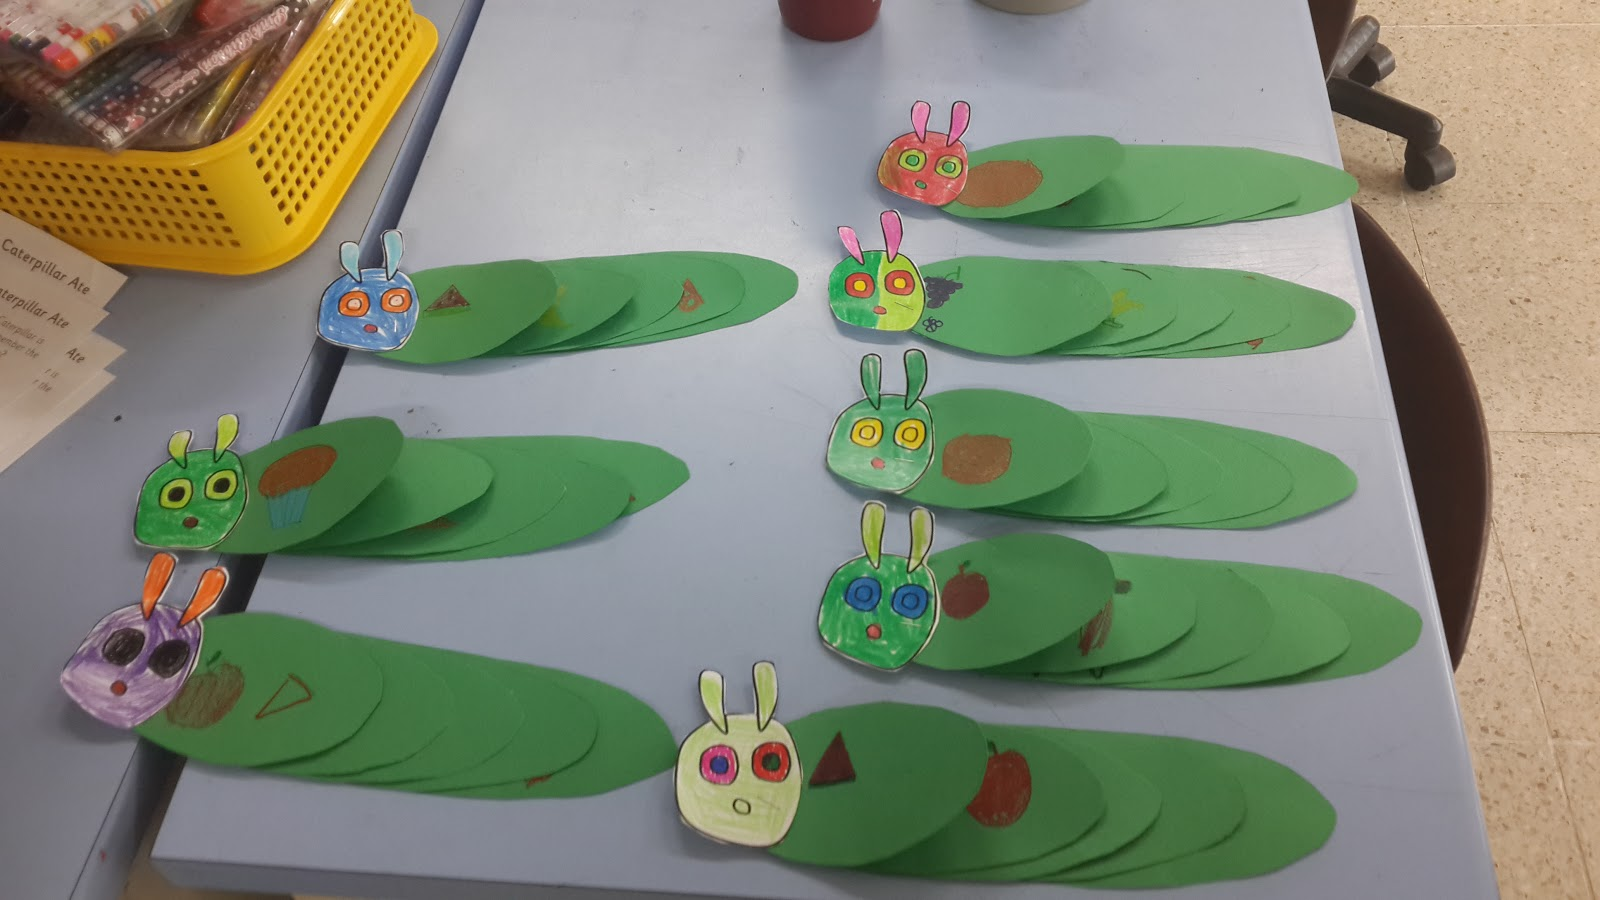 2017 05 the very hungry caterpillar lesson plans - Camp Day 3 The Very Hungry Caterpillar Eric Carle Mrs Baia S Classroom